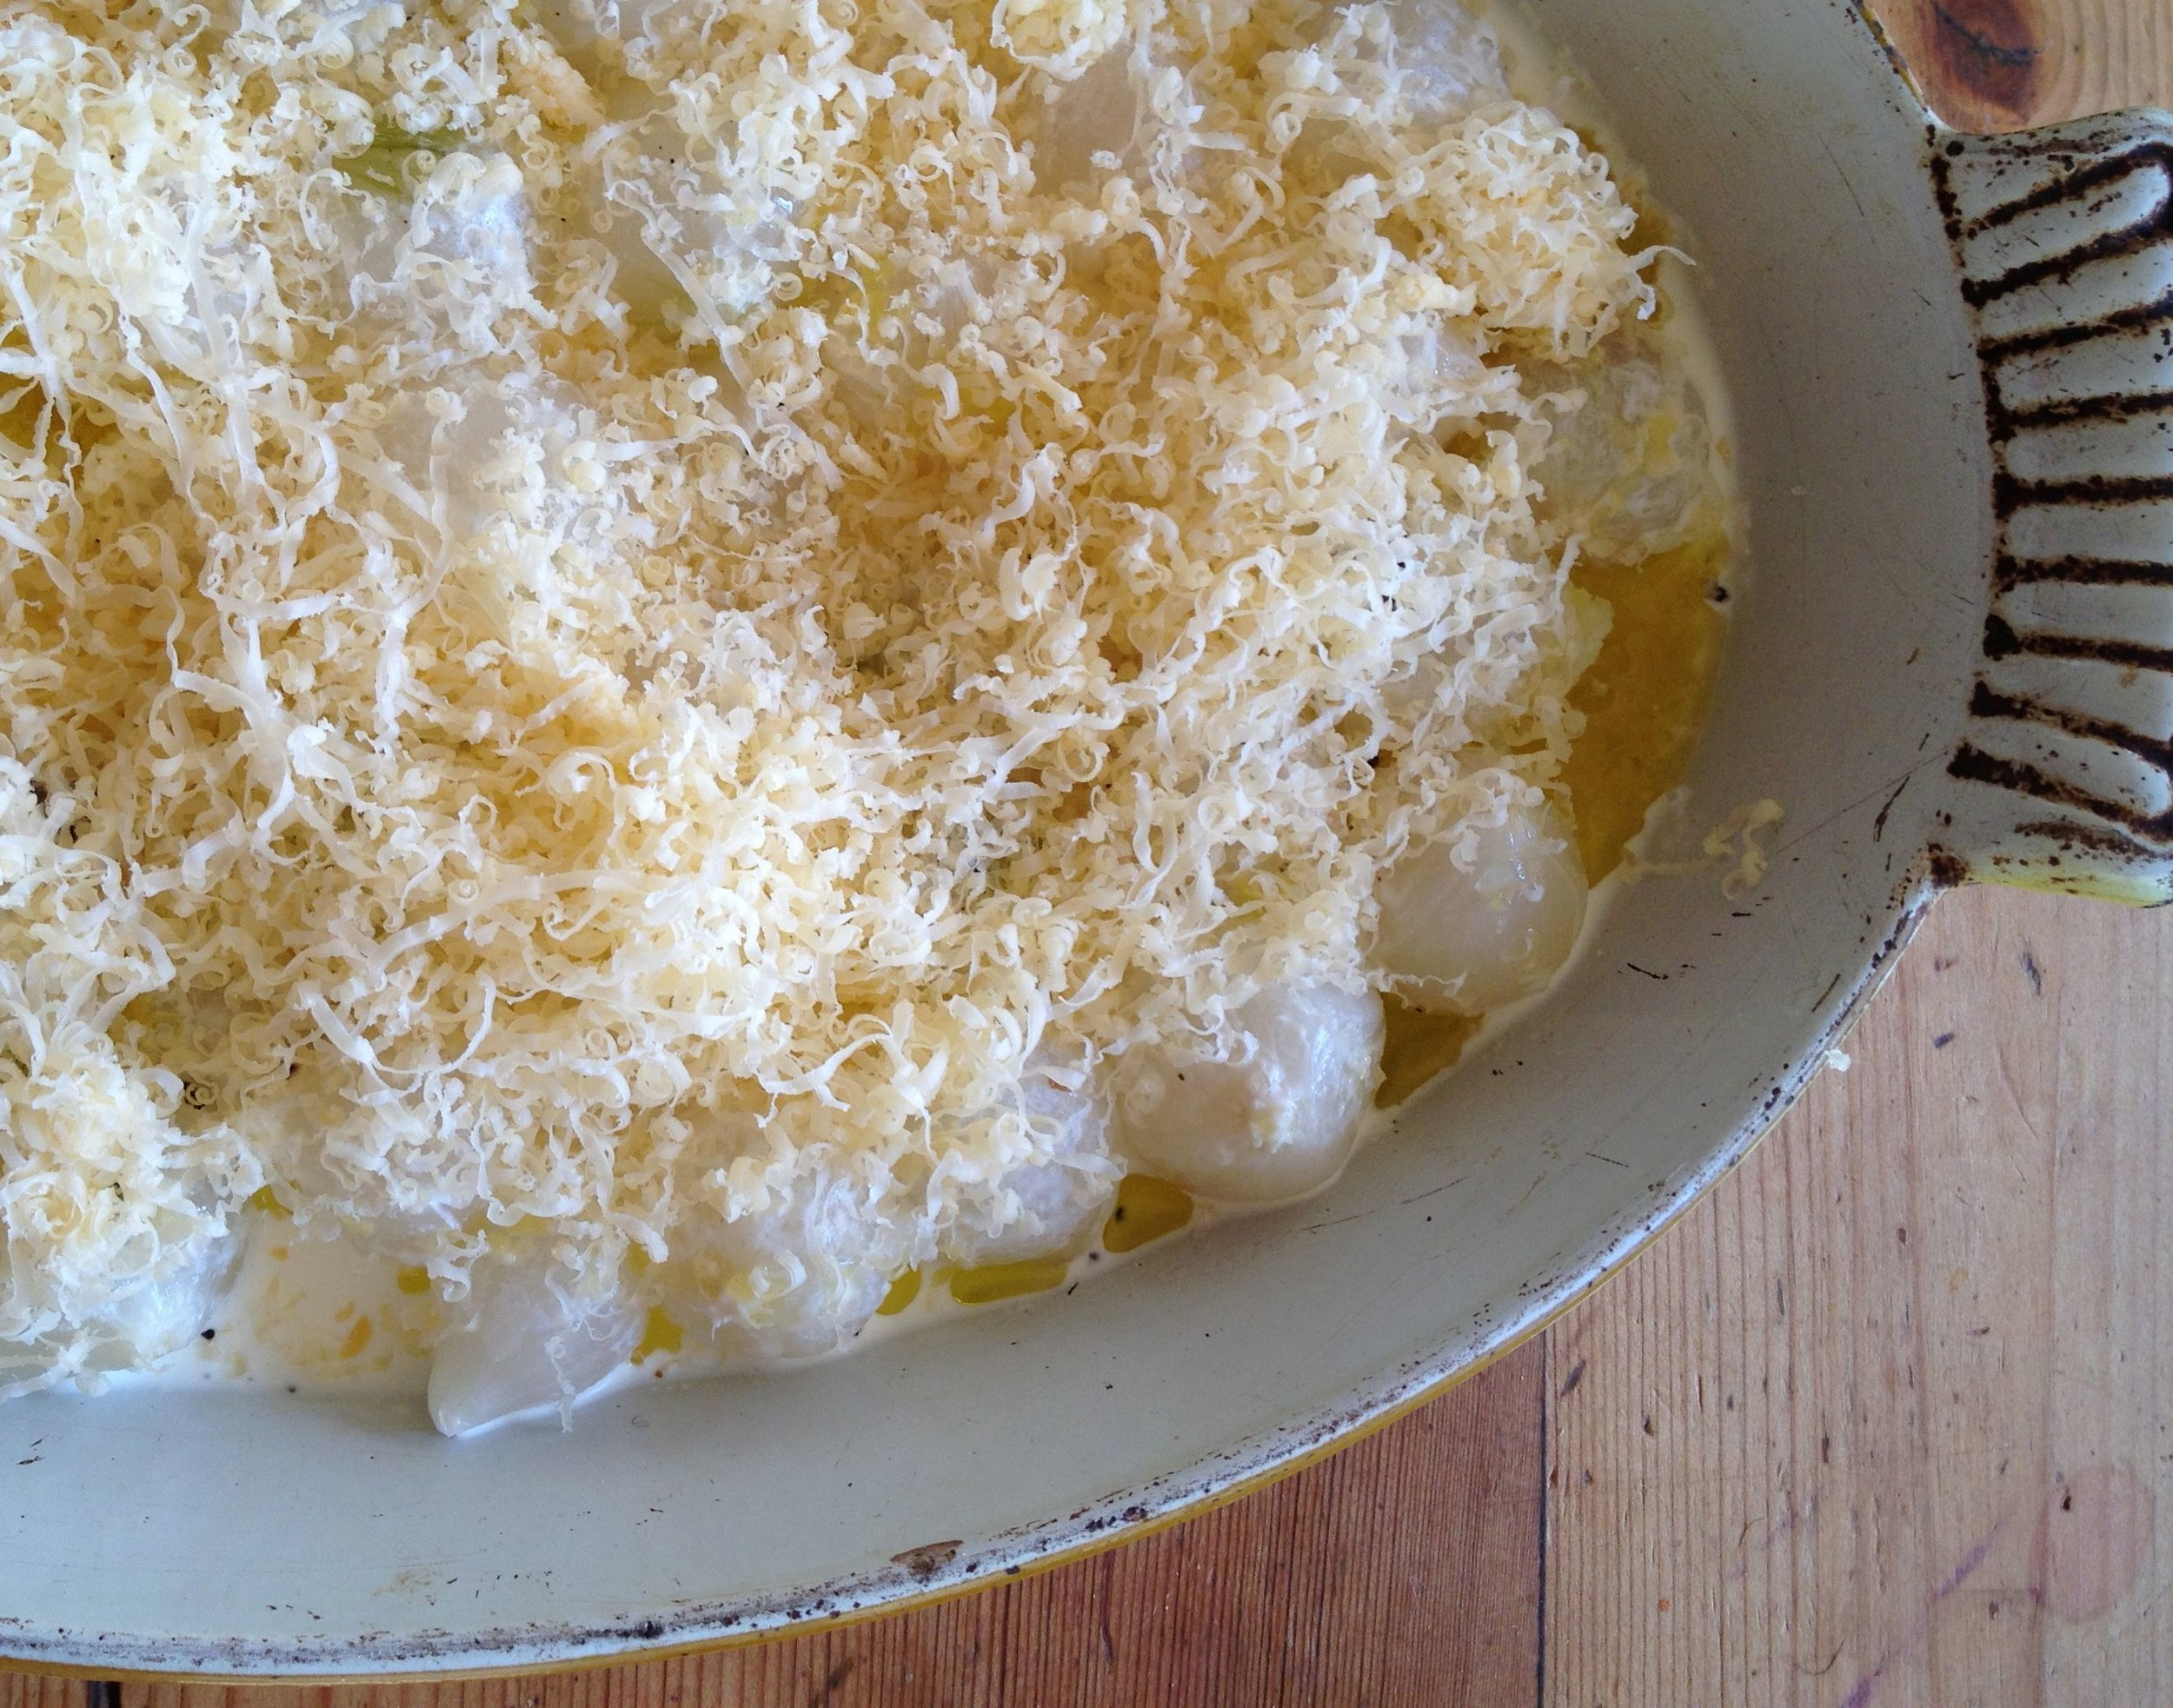 baked pearl onions with truffles and cheese